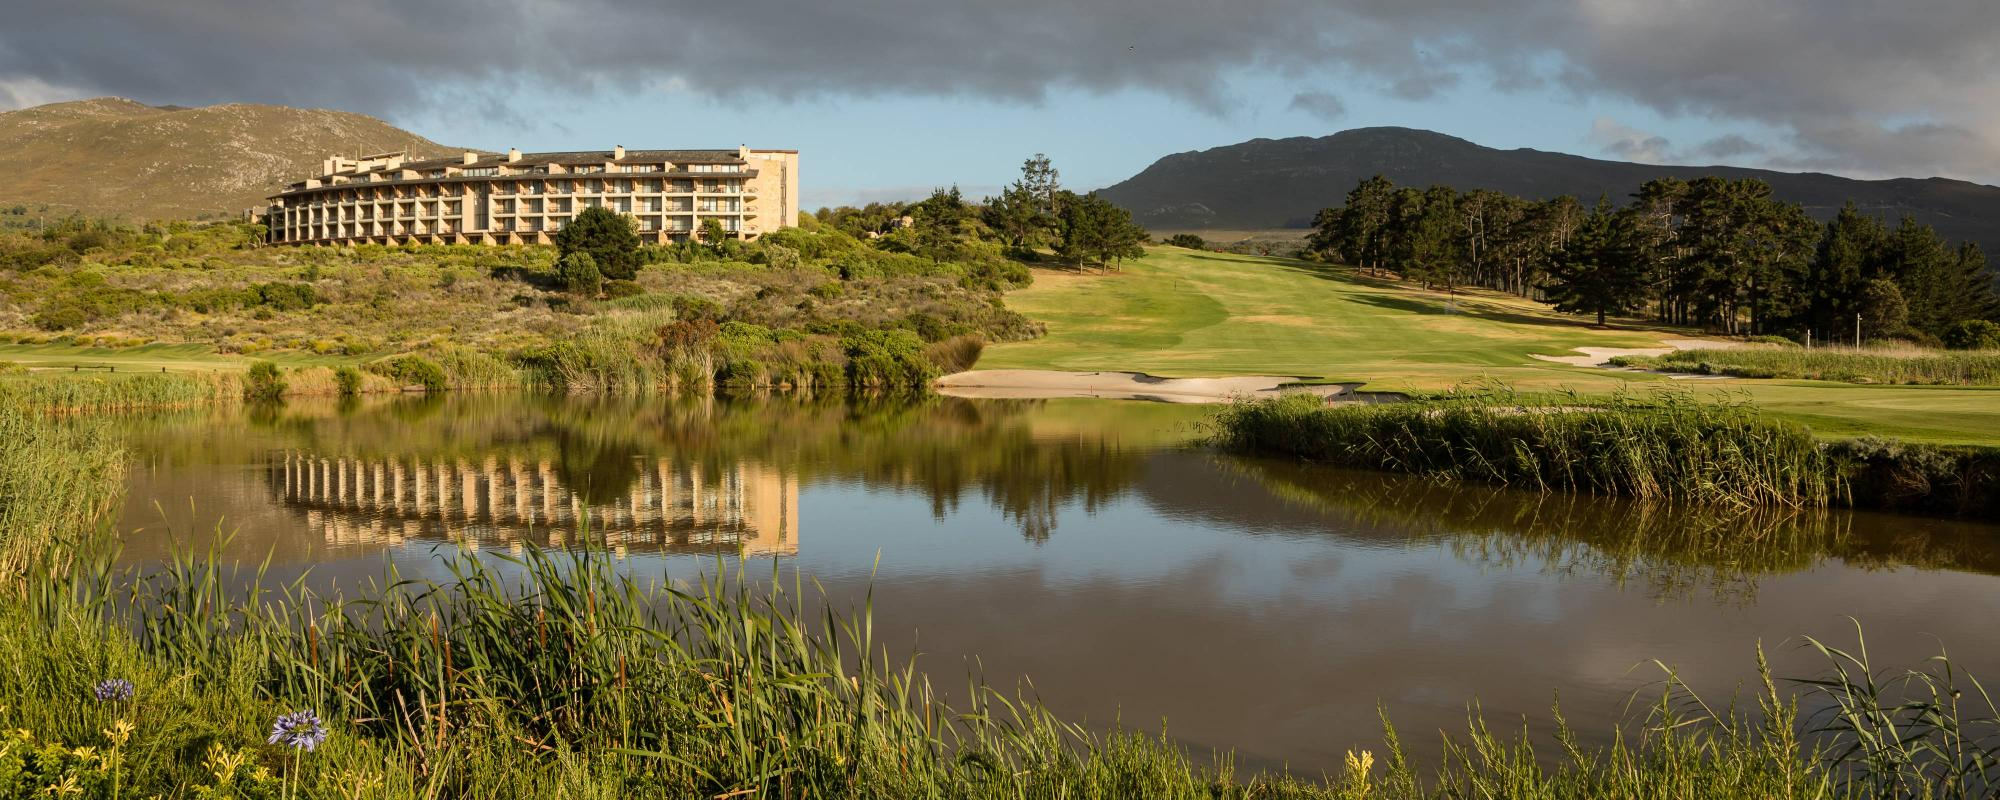 All The Arabella Hotel  Spa's impressive golf course within sensational South Africa.